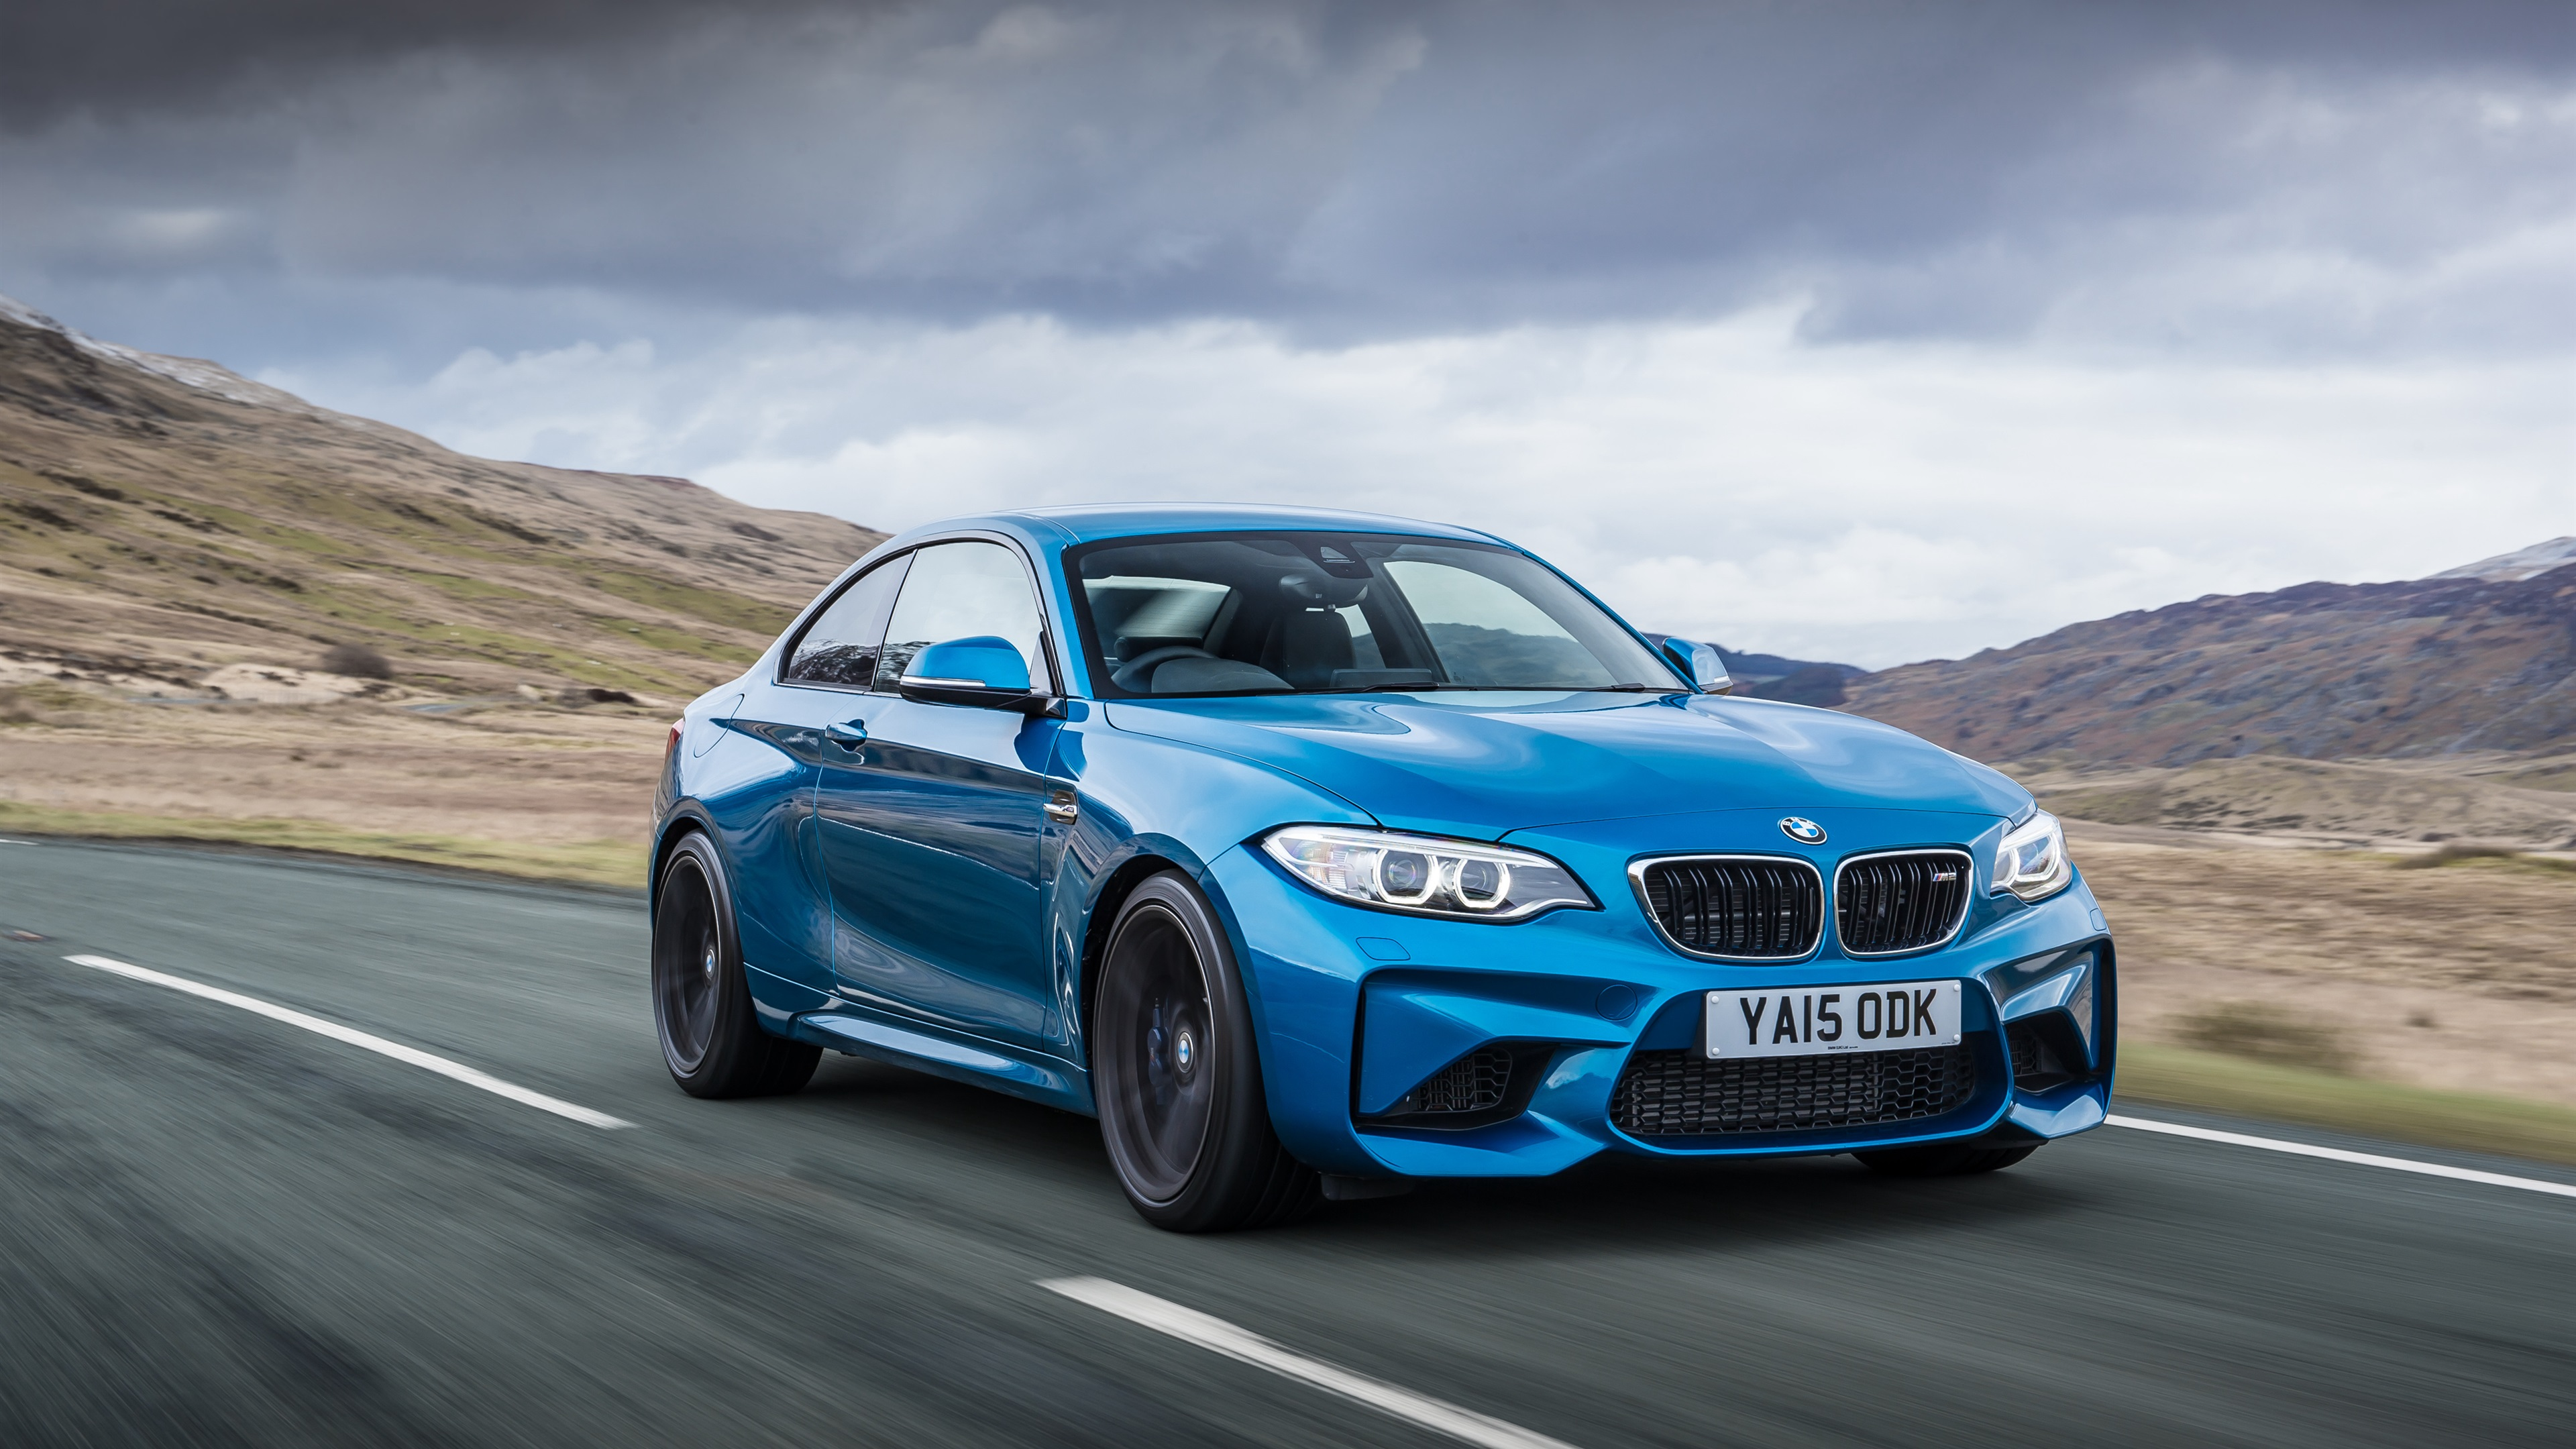 Bmw M2 Coupe F87 Blue Car Speed 1080x1920 Iphone 8 7 6 6s